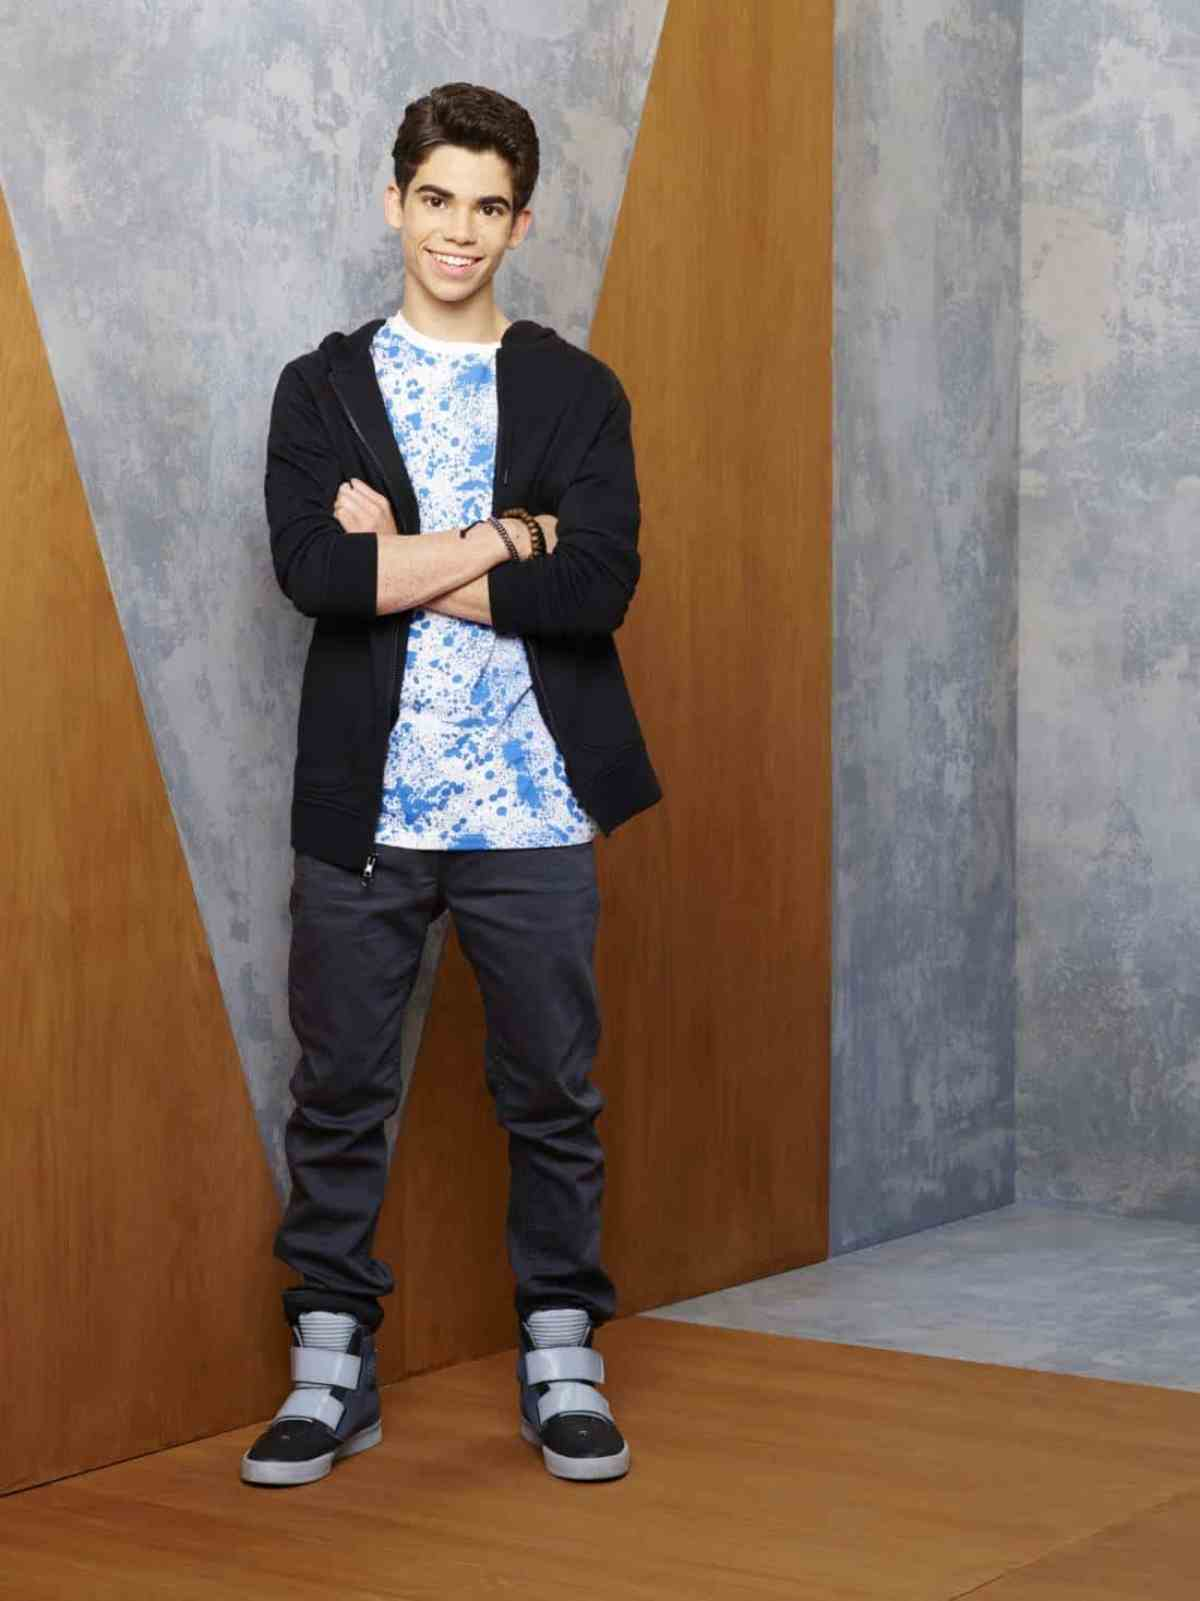 """GAMER'S GUIDE TO PRETTY MUCH EVERYTHING - Disney XD's """"Gamer's Guide to Pretty Much Everything"""" stars Cameron Boyce as Conor. (Disney XD/Craig Sjodin)"""